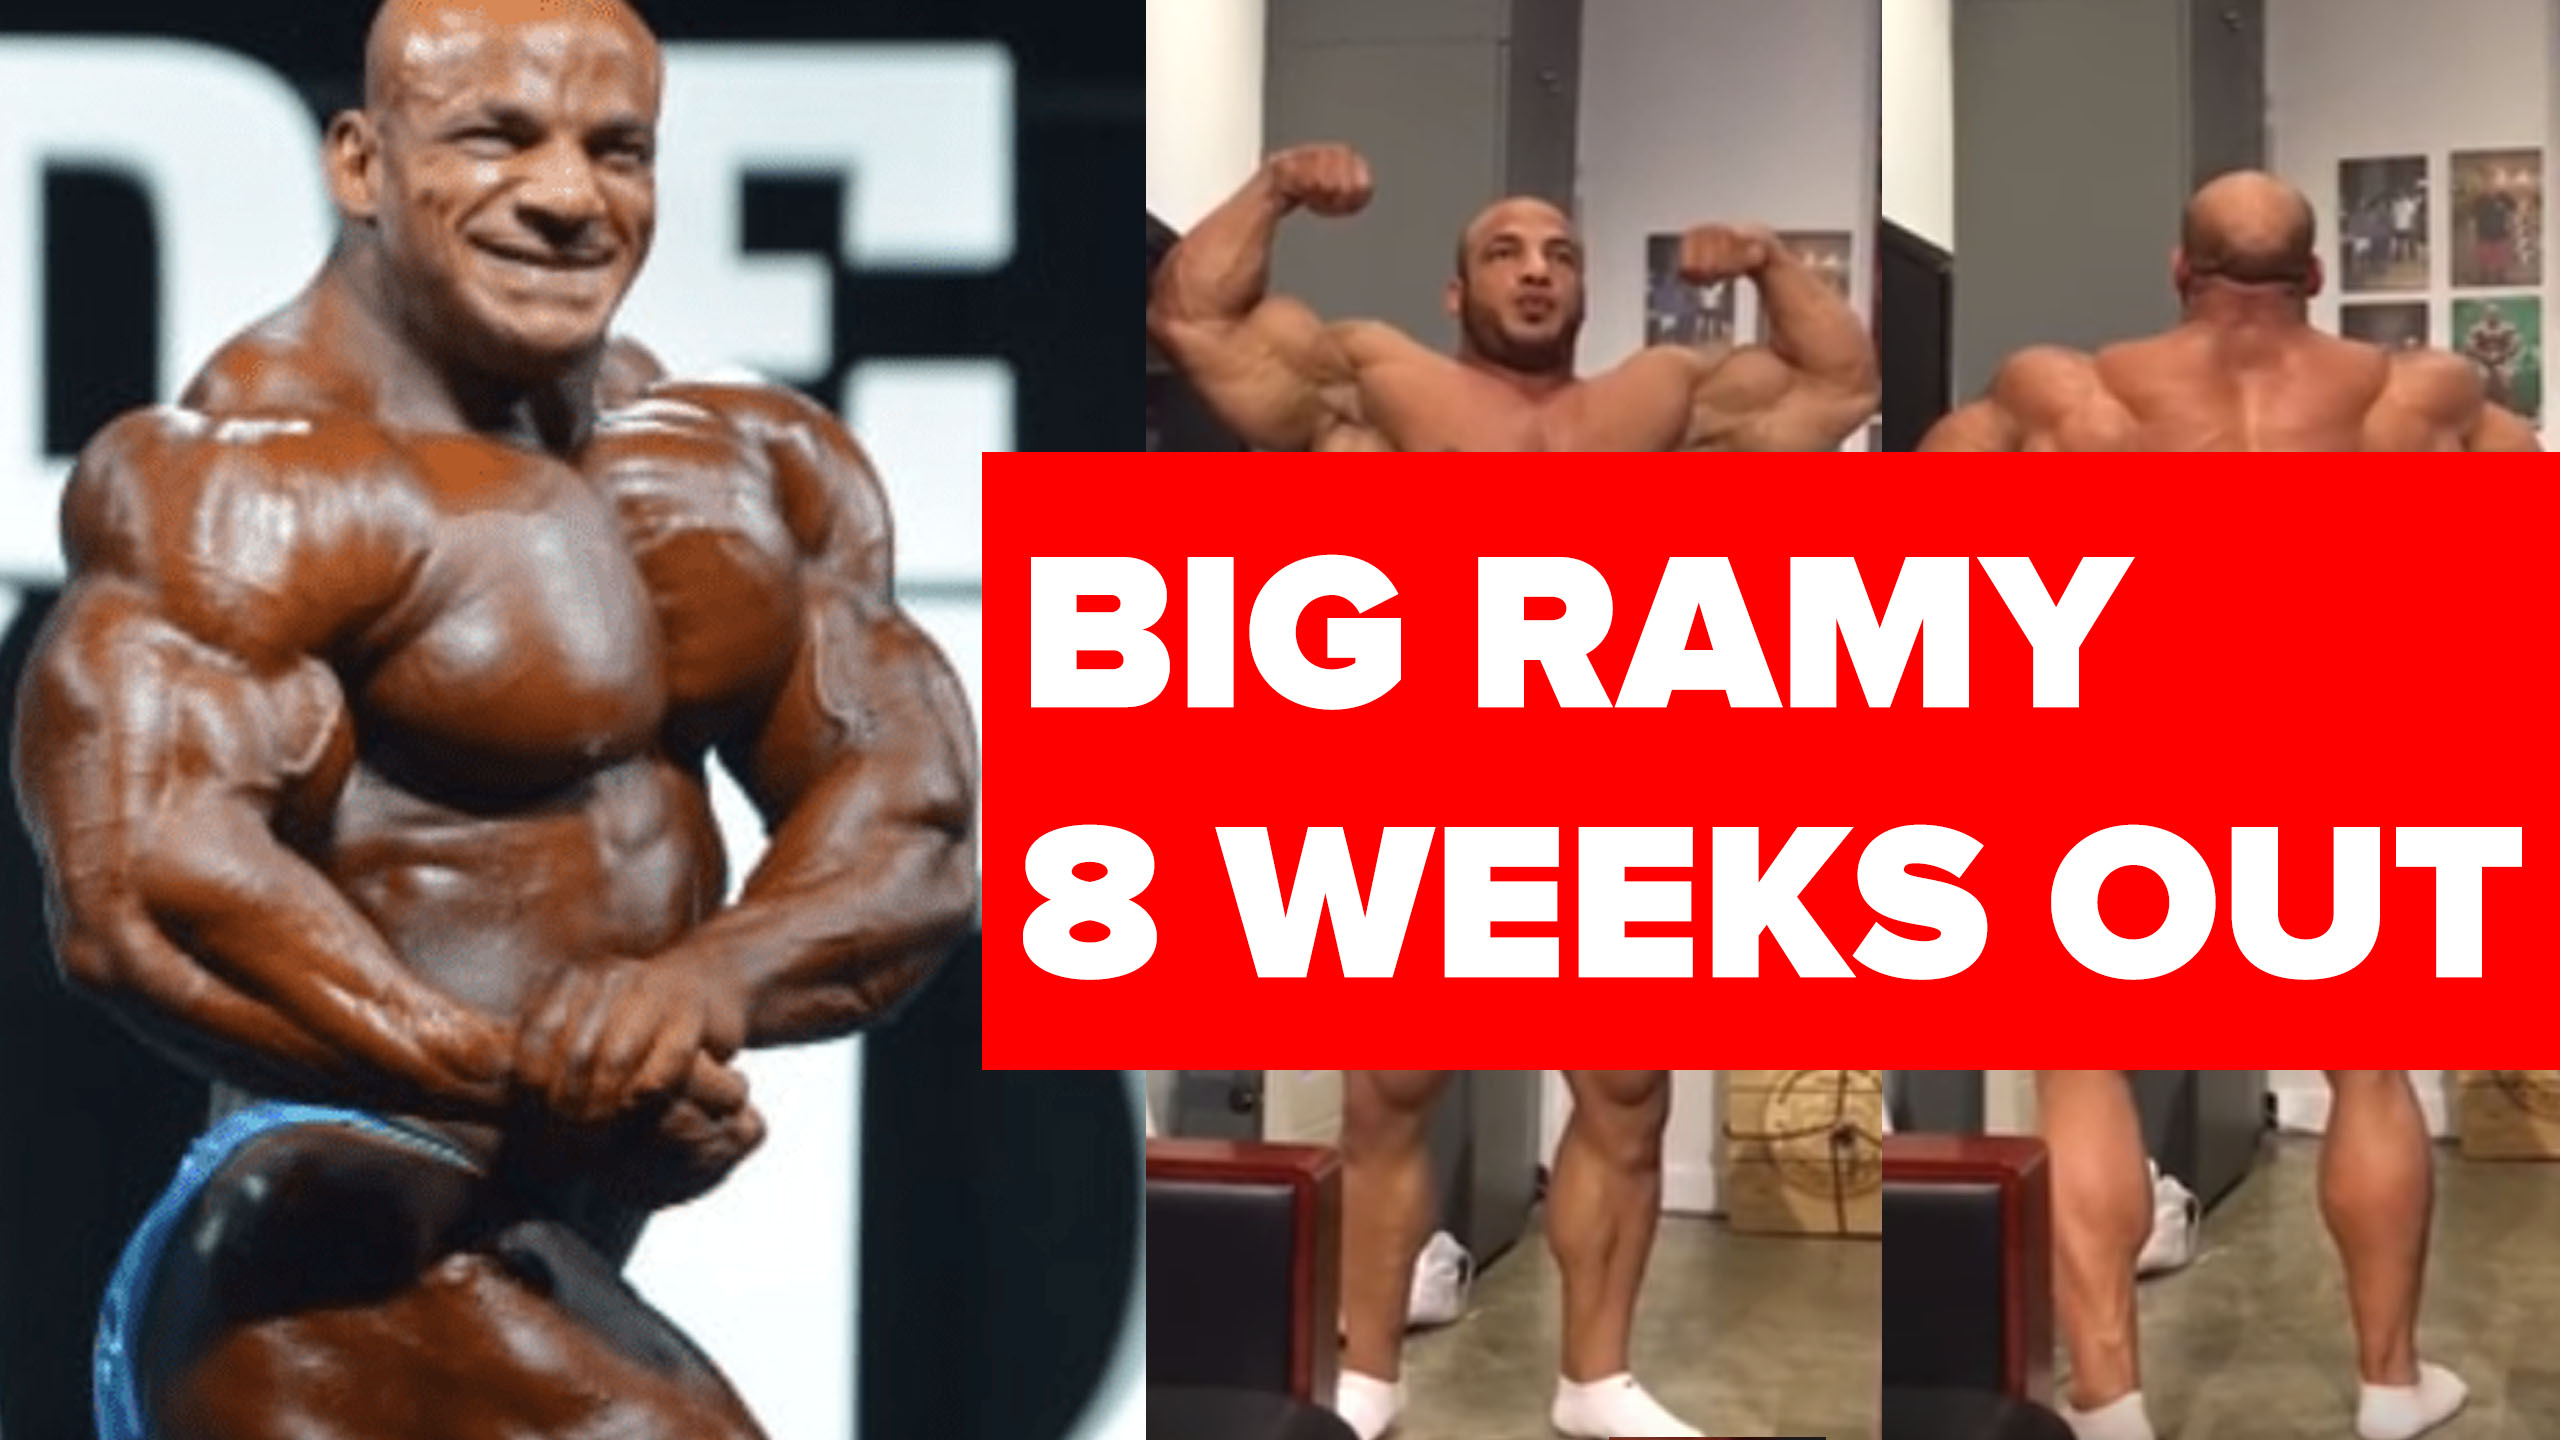 big ramy 8 weeks out 2018 olympia